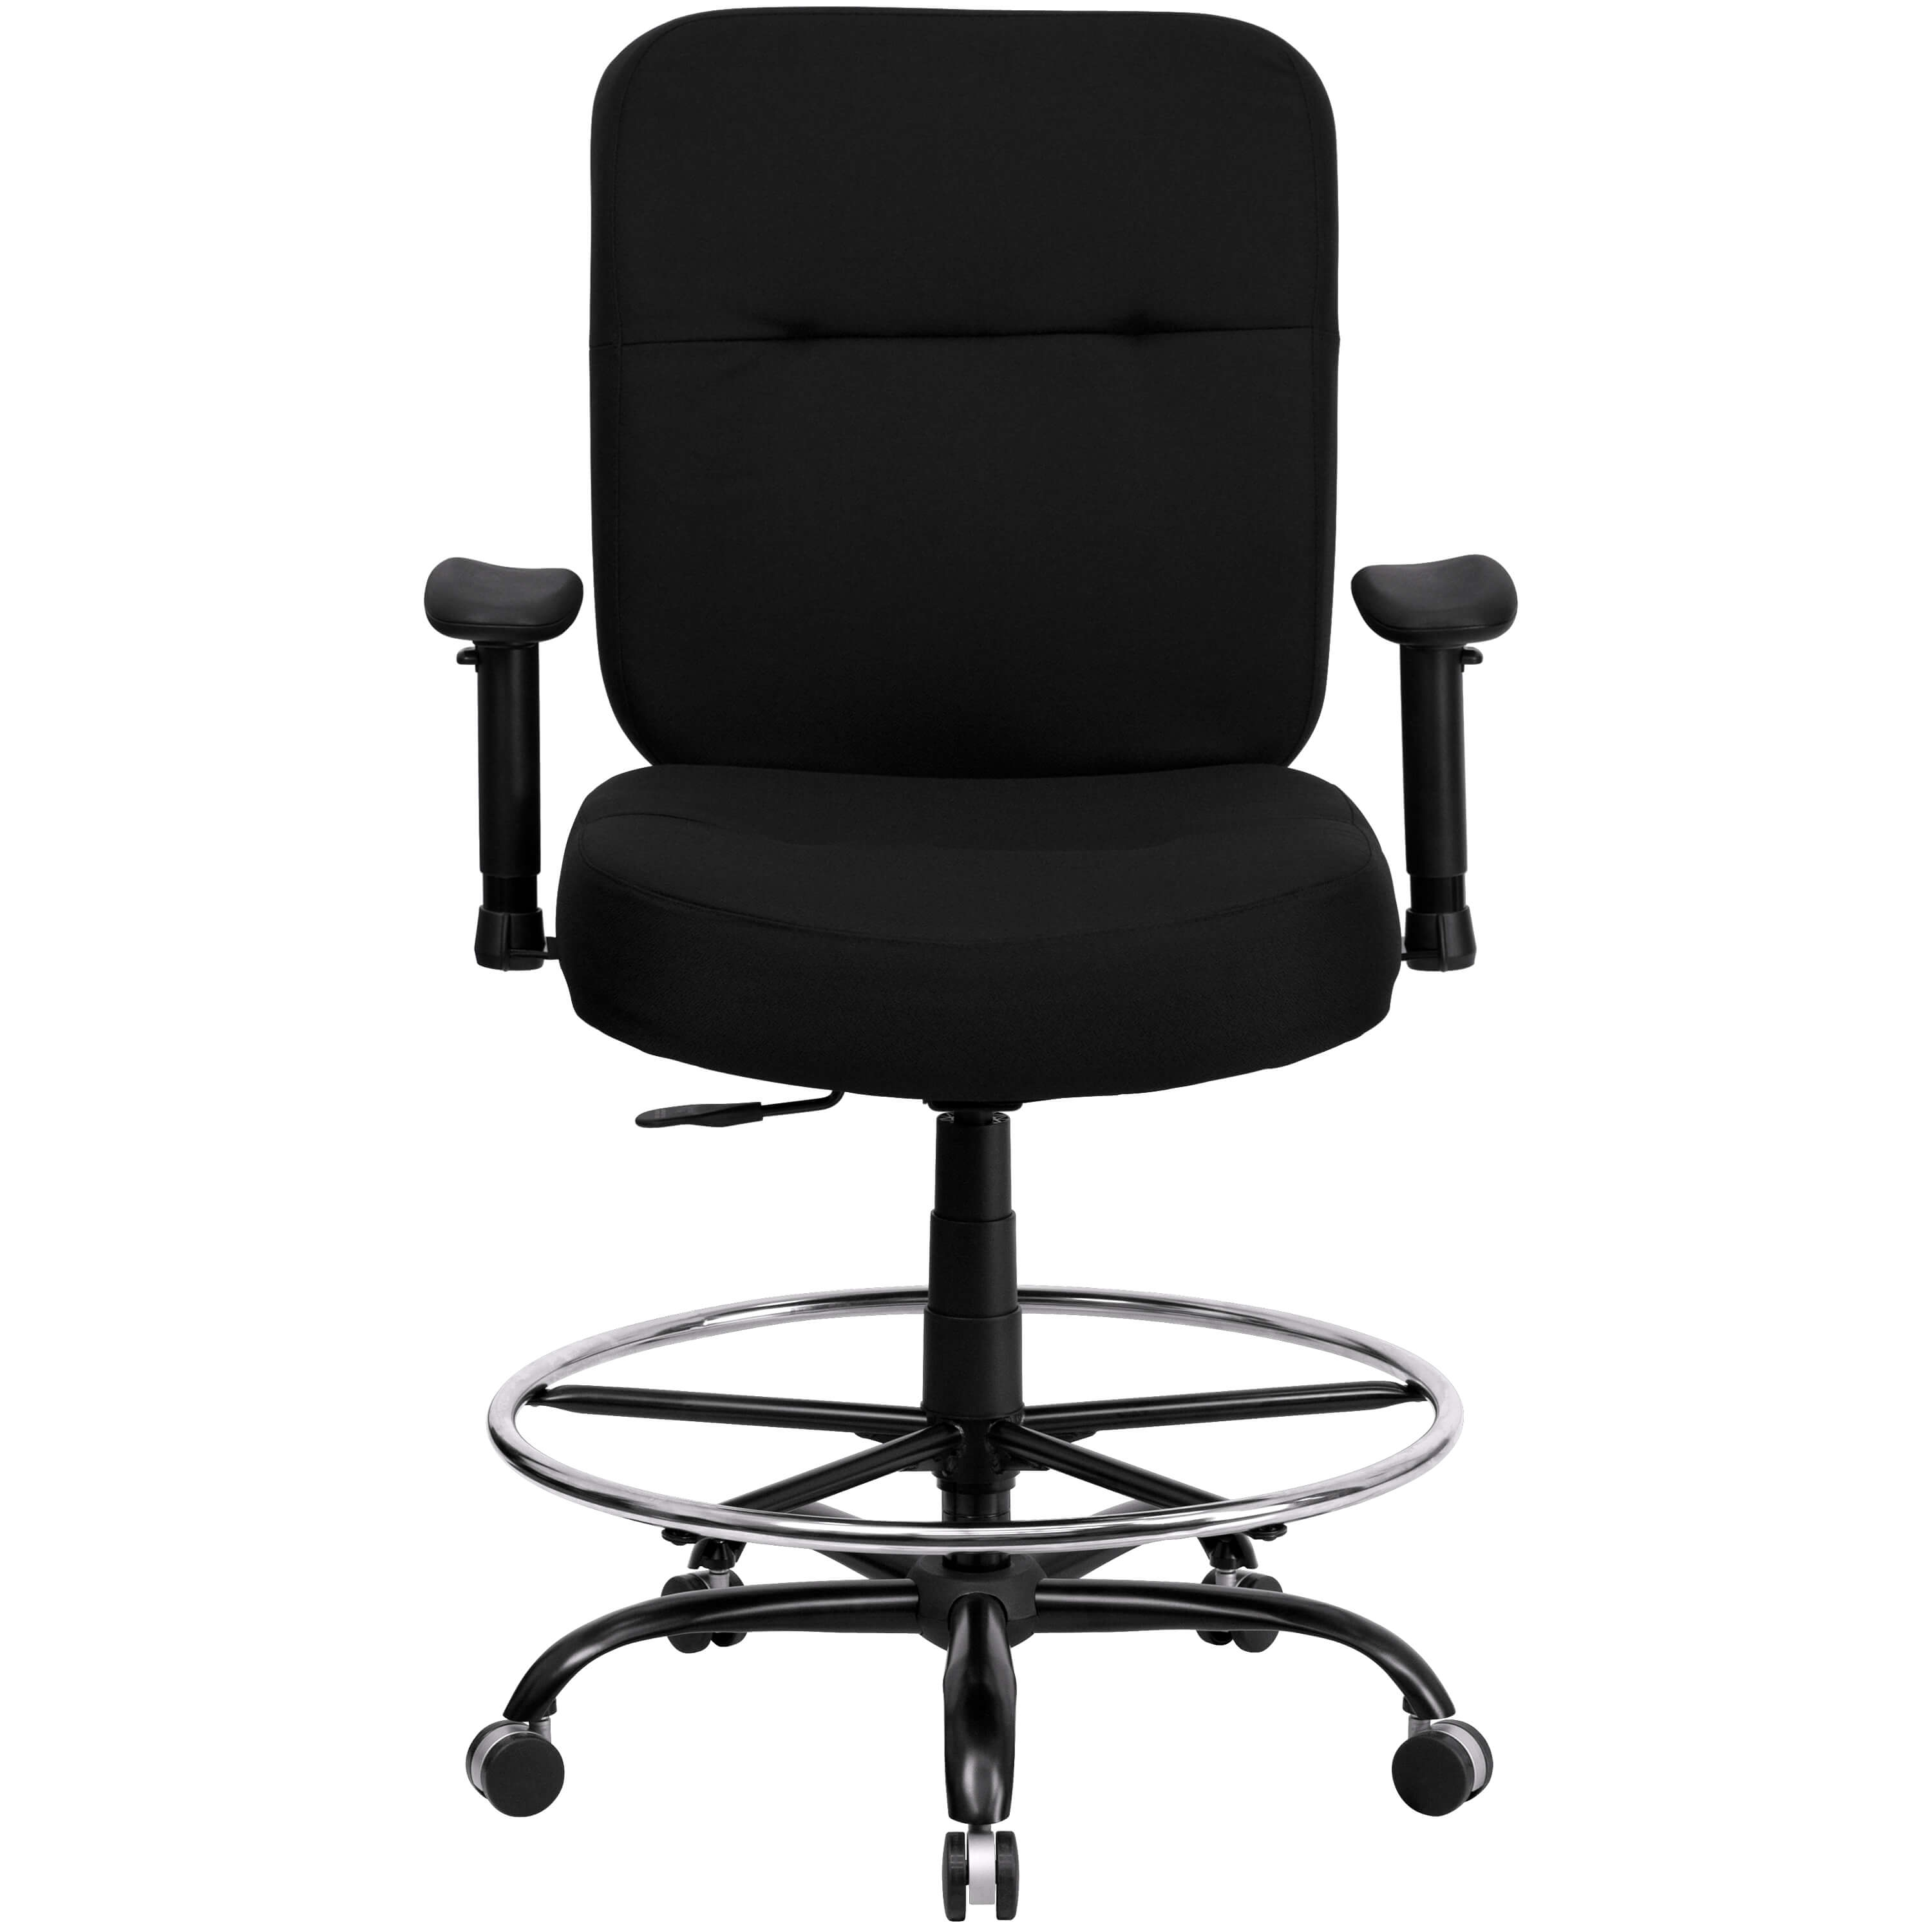 Large size office chairs front view